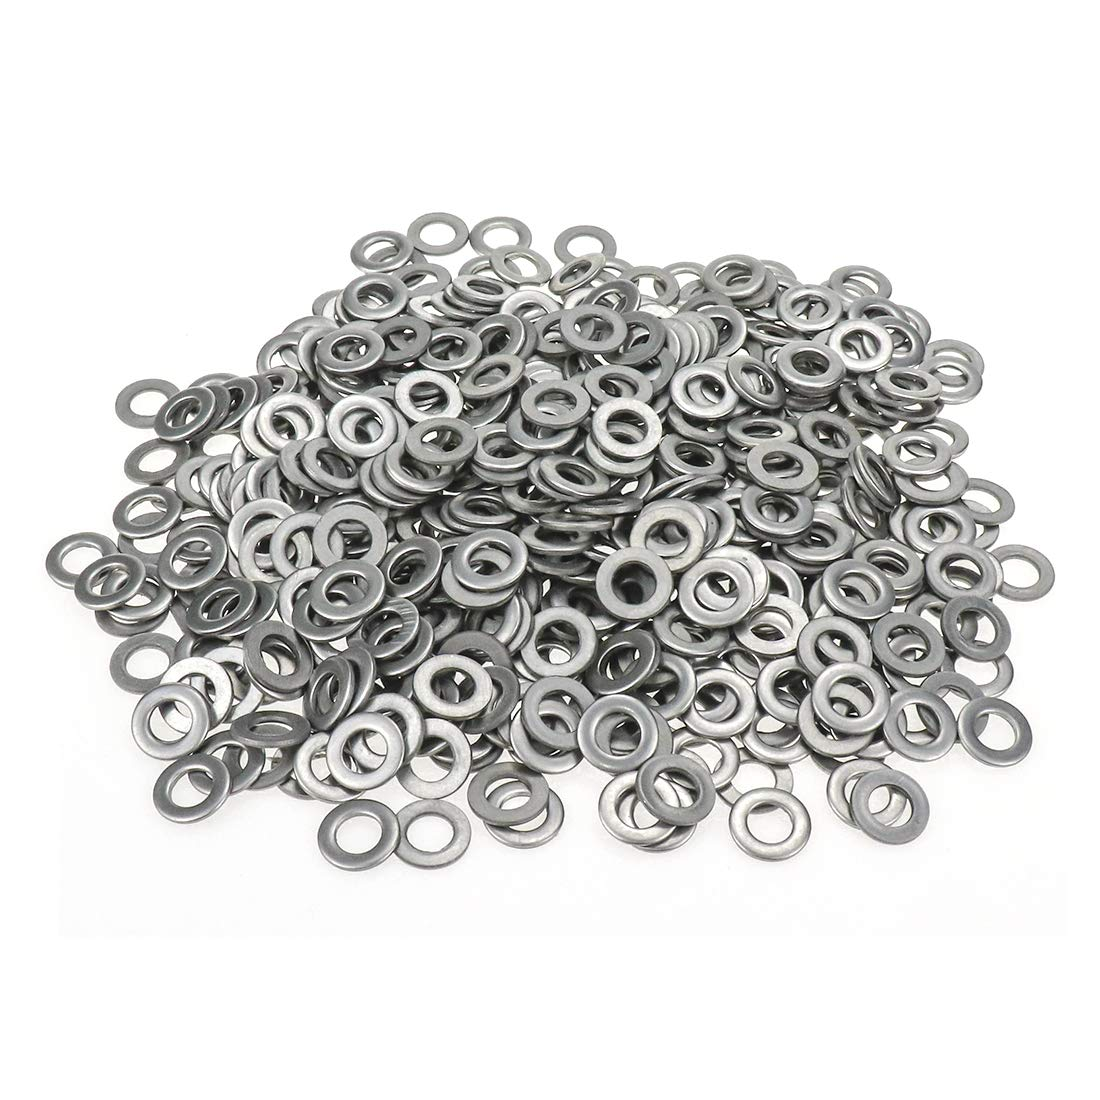 12mm OD x 6mm ID Pack of 500 Dasunny M6 1//2inch x 1//20inch Non-Slip Flat Washer 304 Stainless Steel